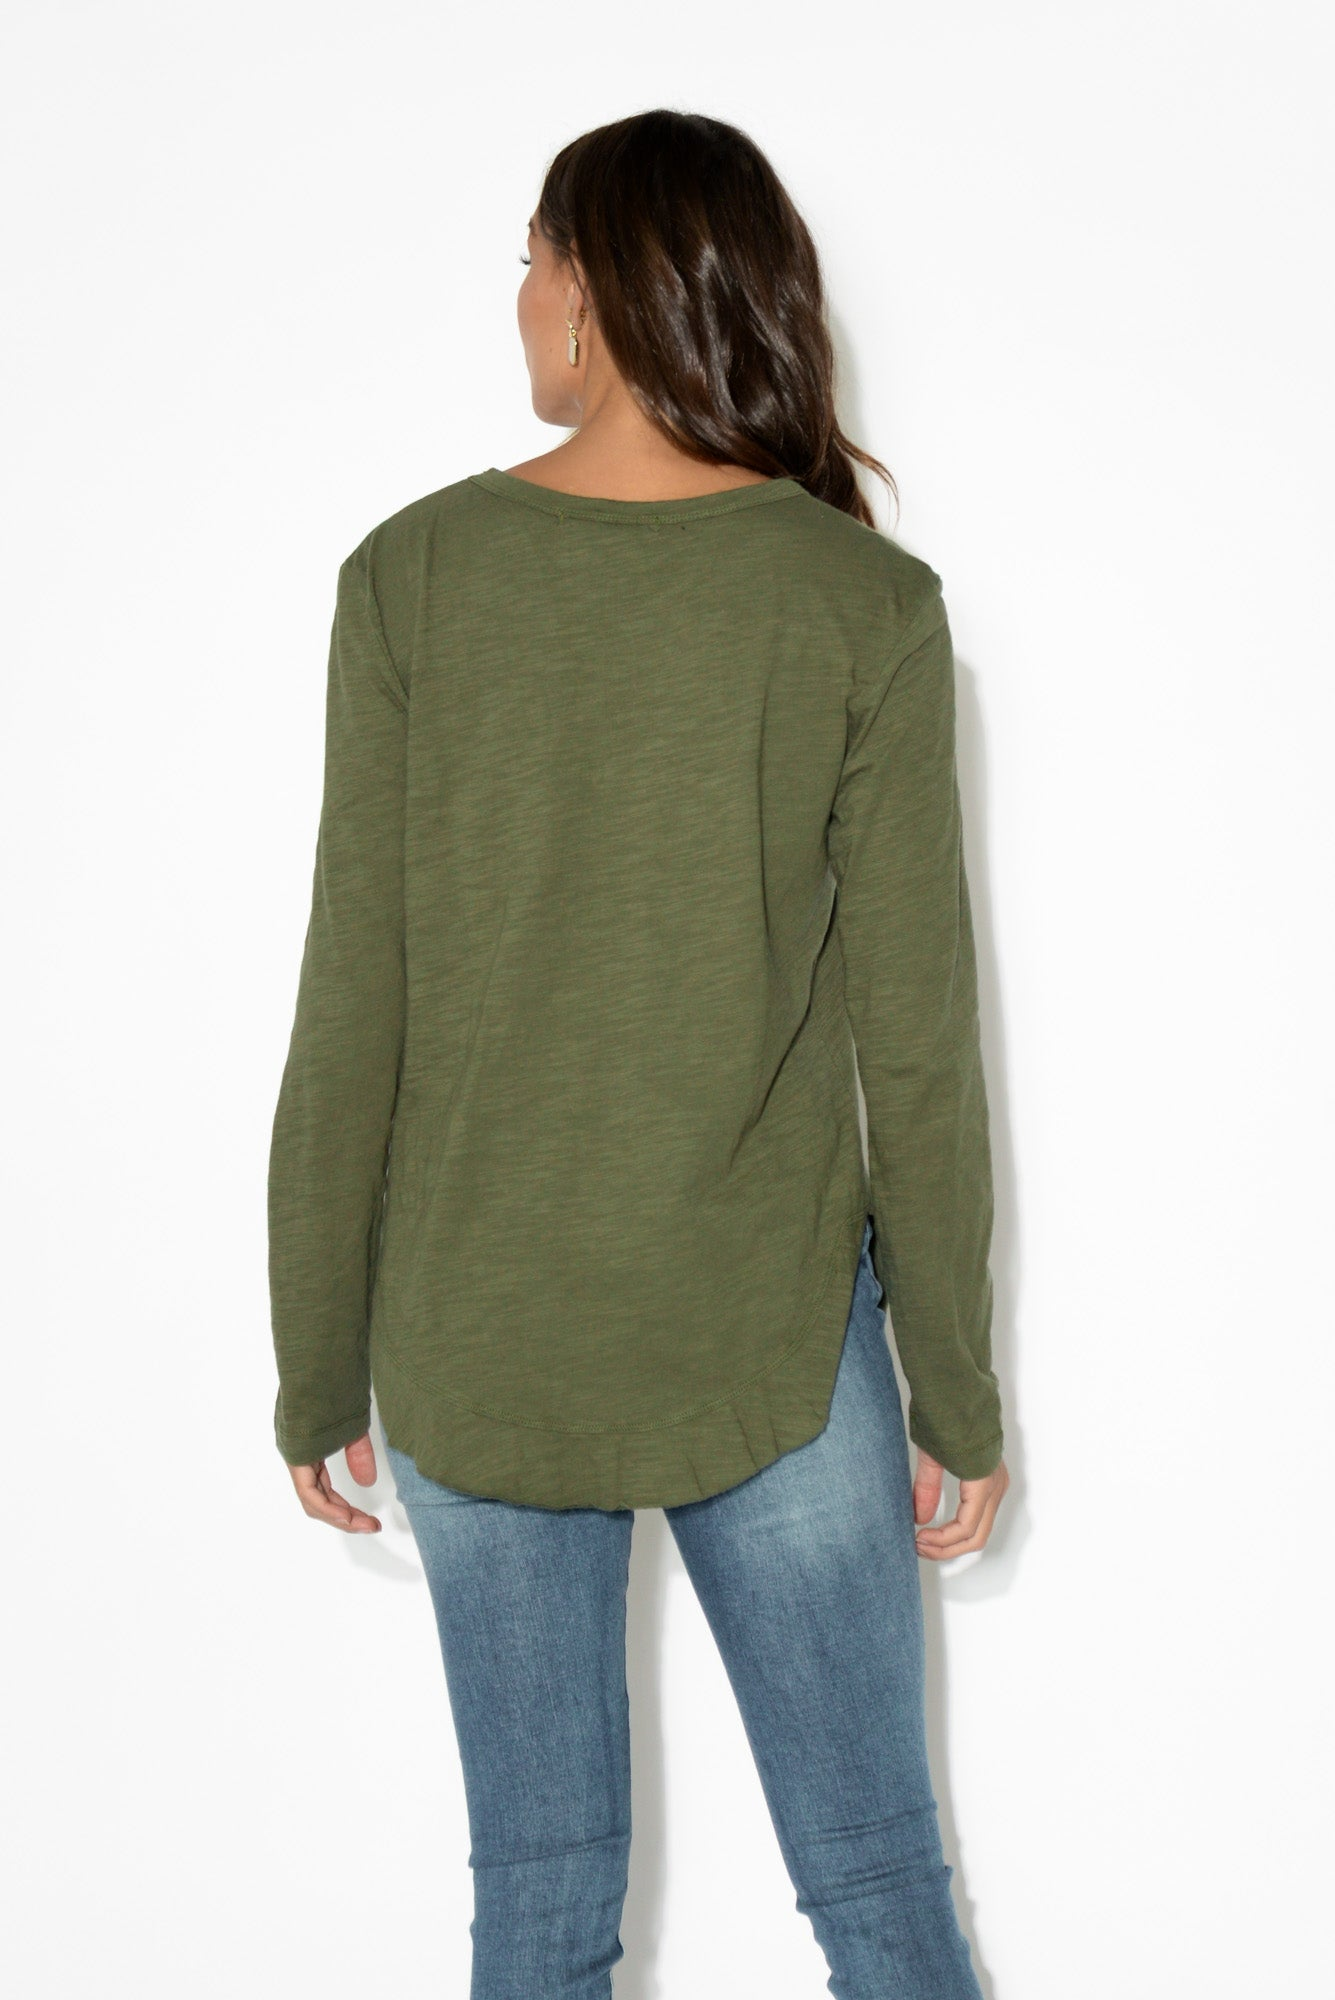 Mosman Khaki Long Sleeve Tee